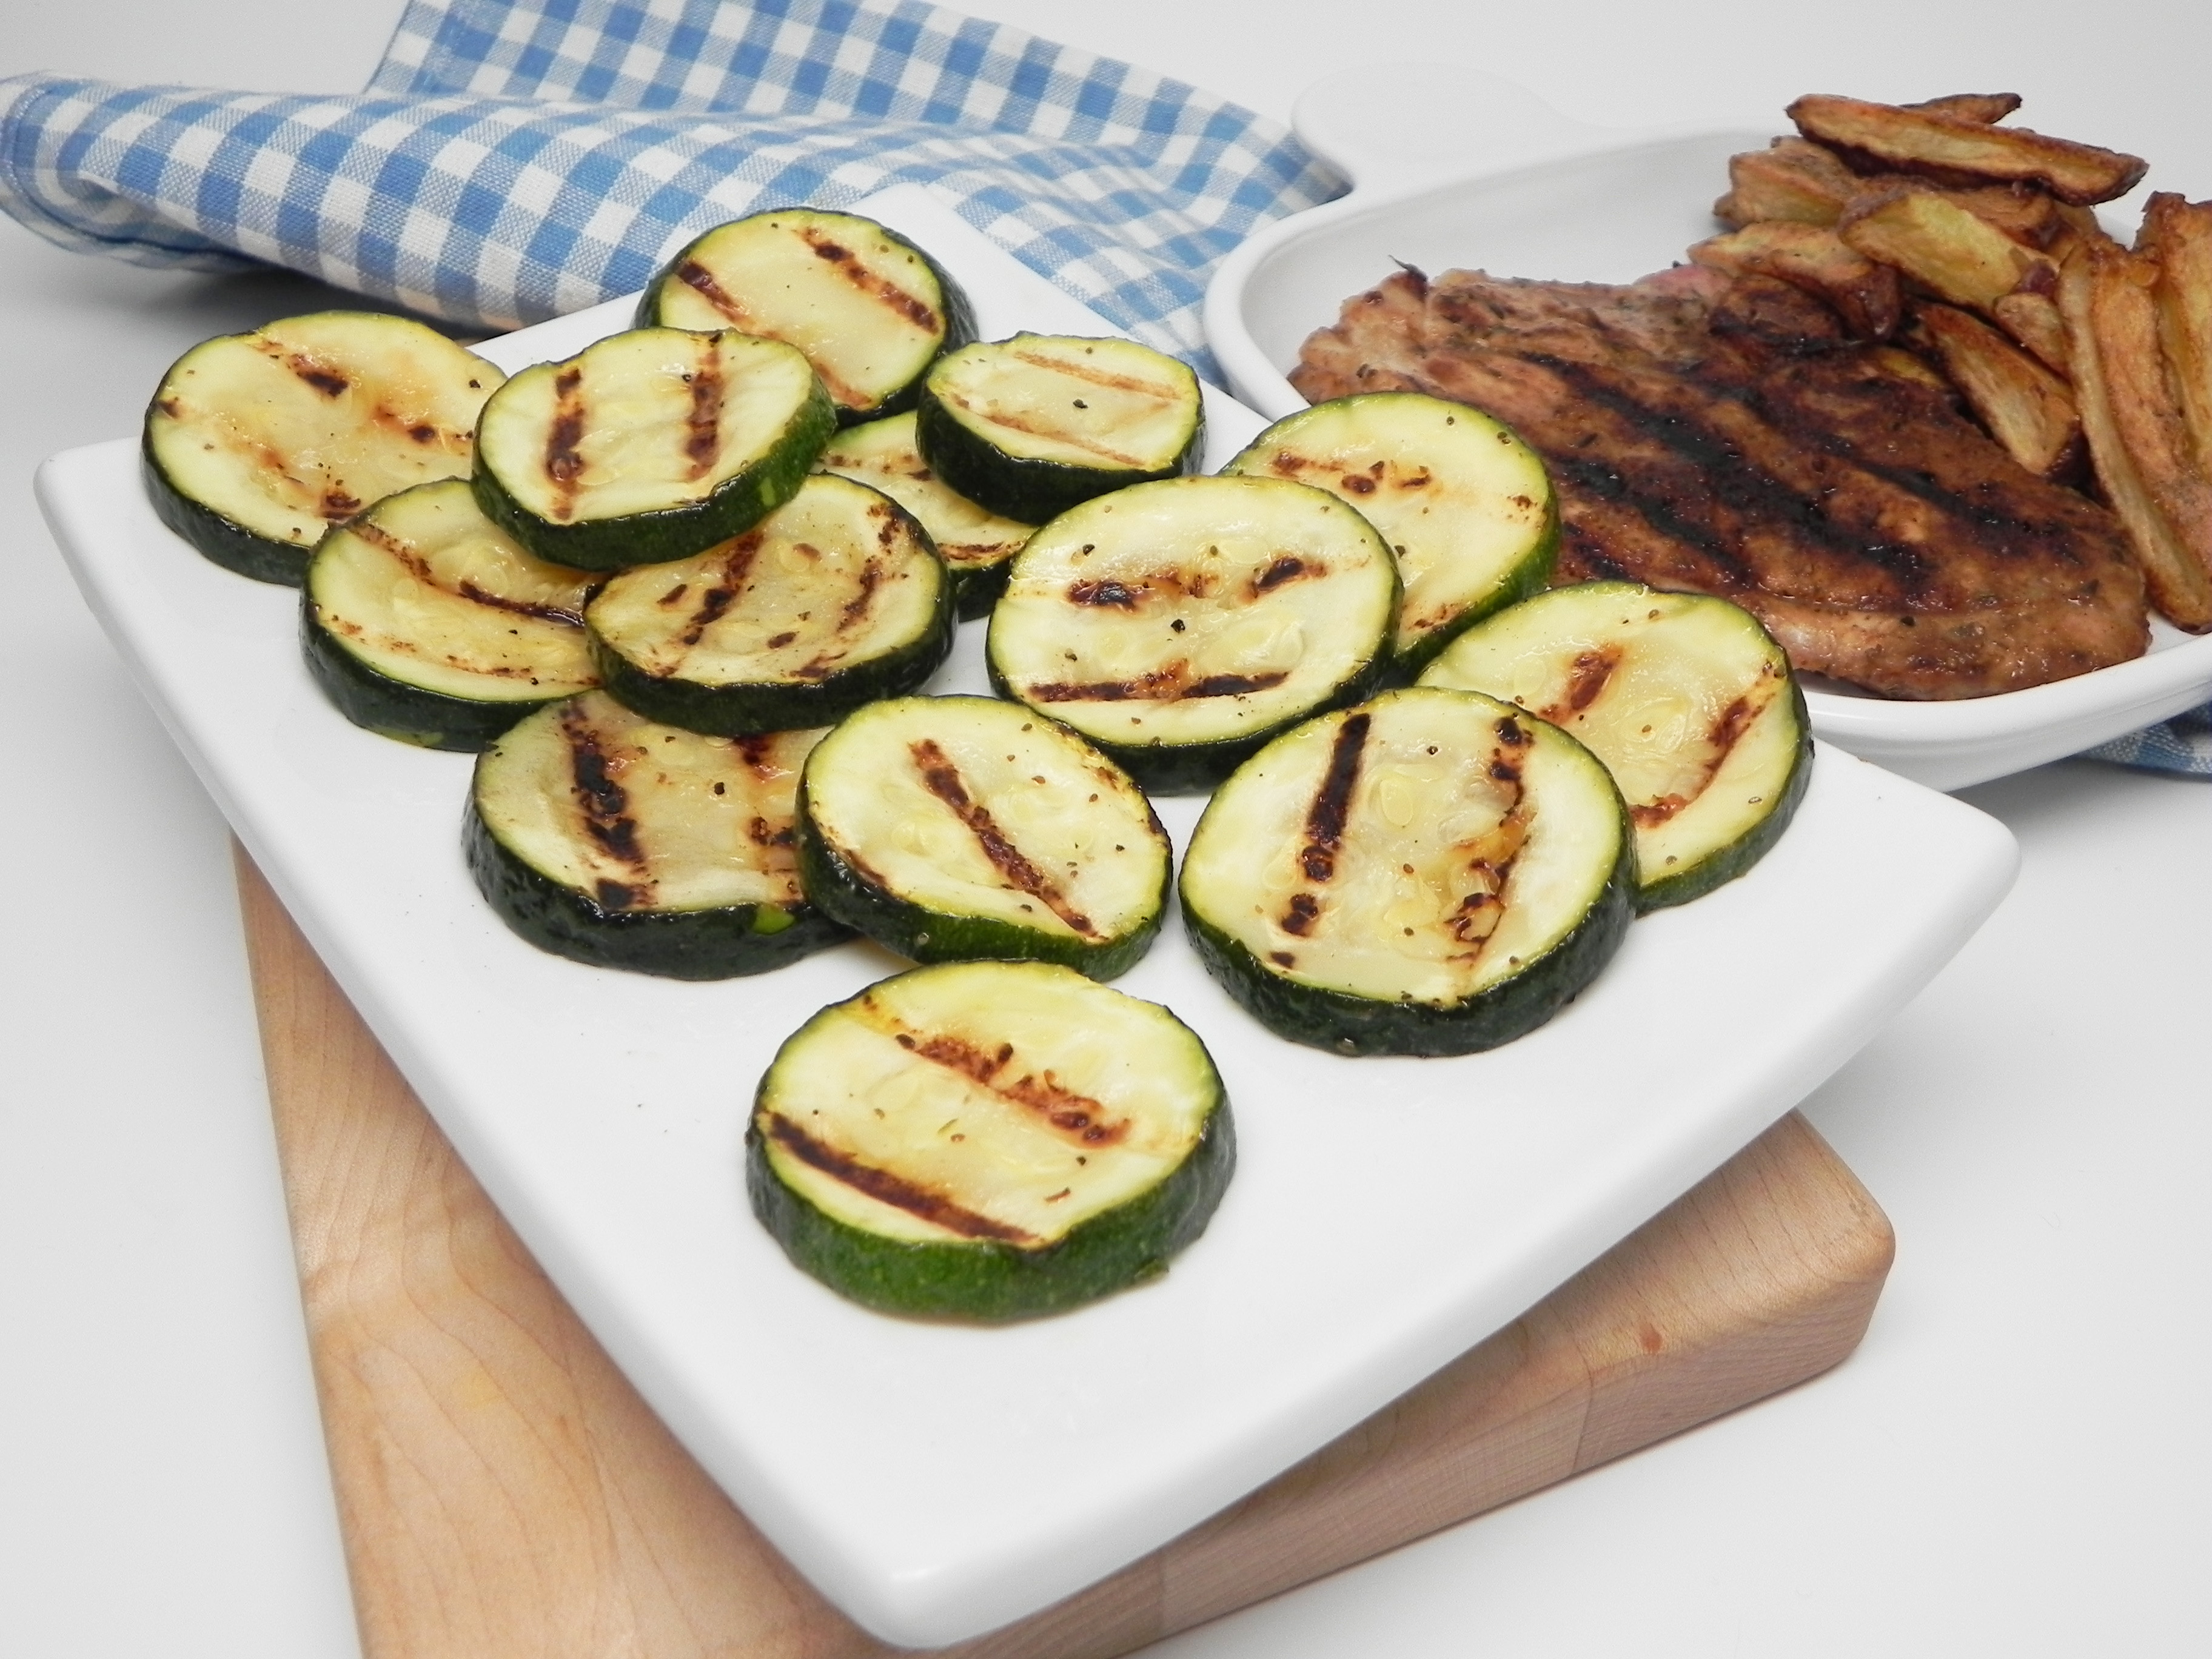 Easy Pan-Grilled Zucchini with Lemon Pepper